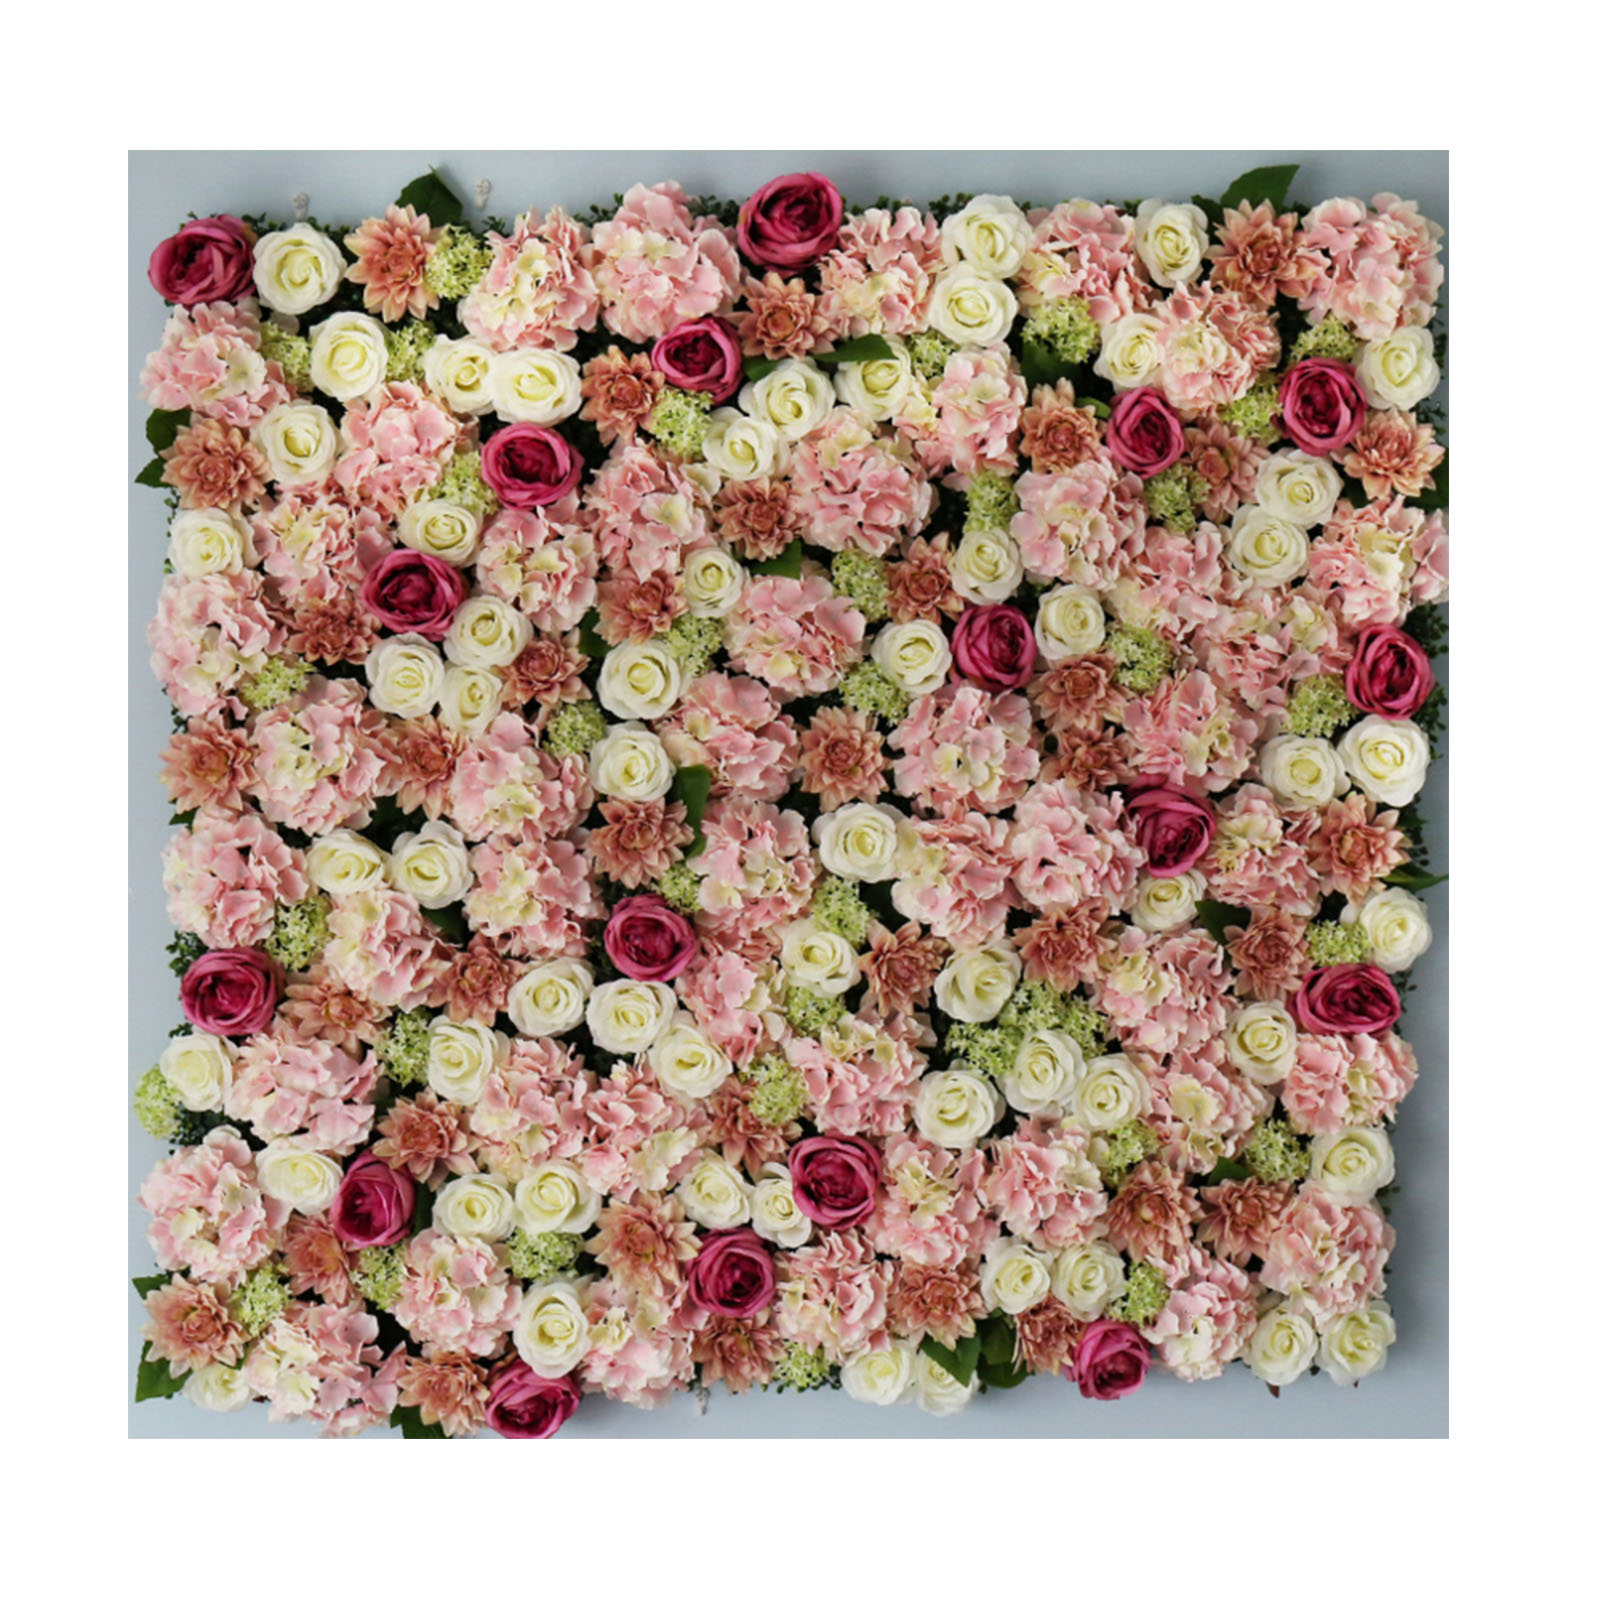 Big Blush Pink White Floral Wall Background Flower Panel